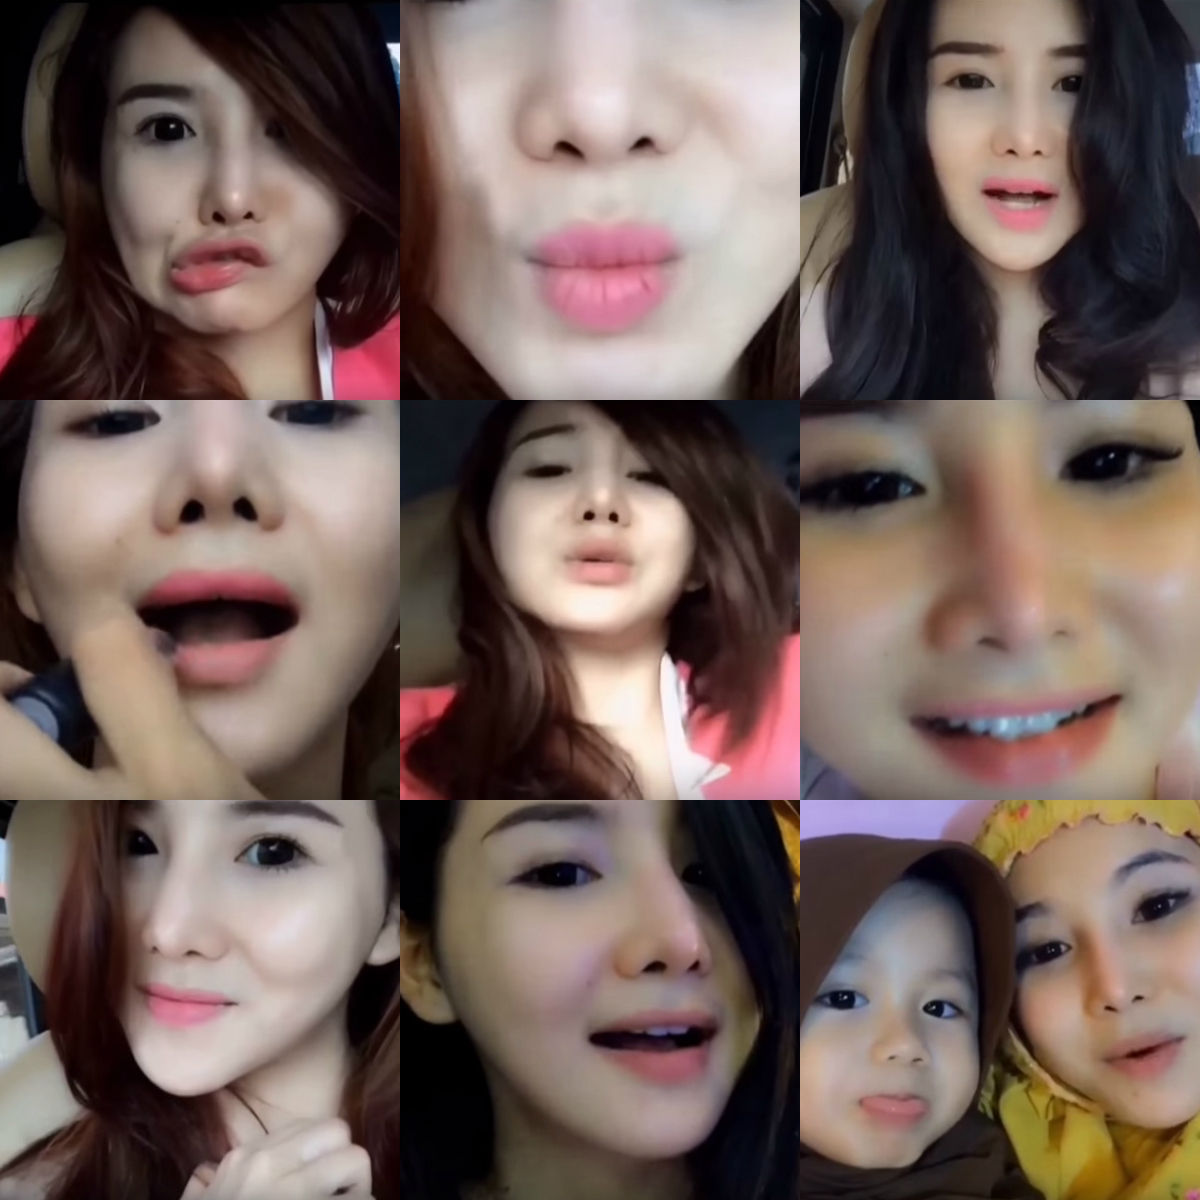 Video Dini Fronitasari Foto Instagram Private, Intip Yuk!